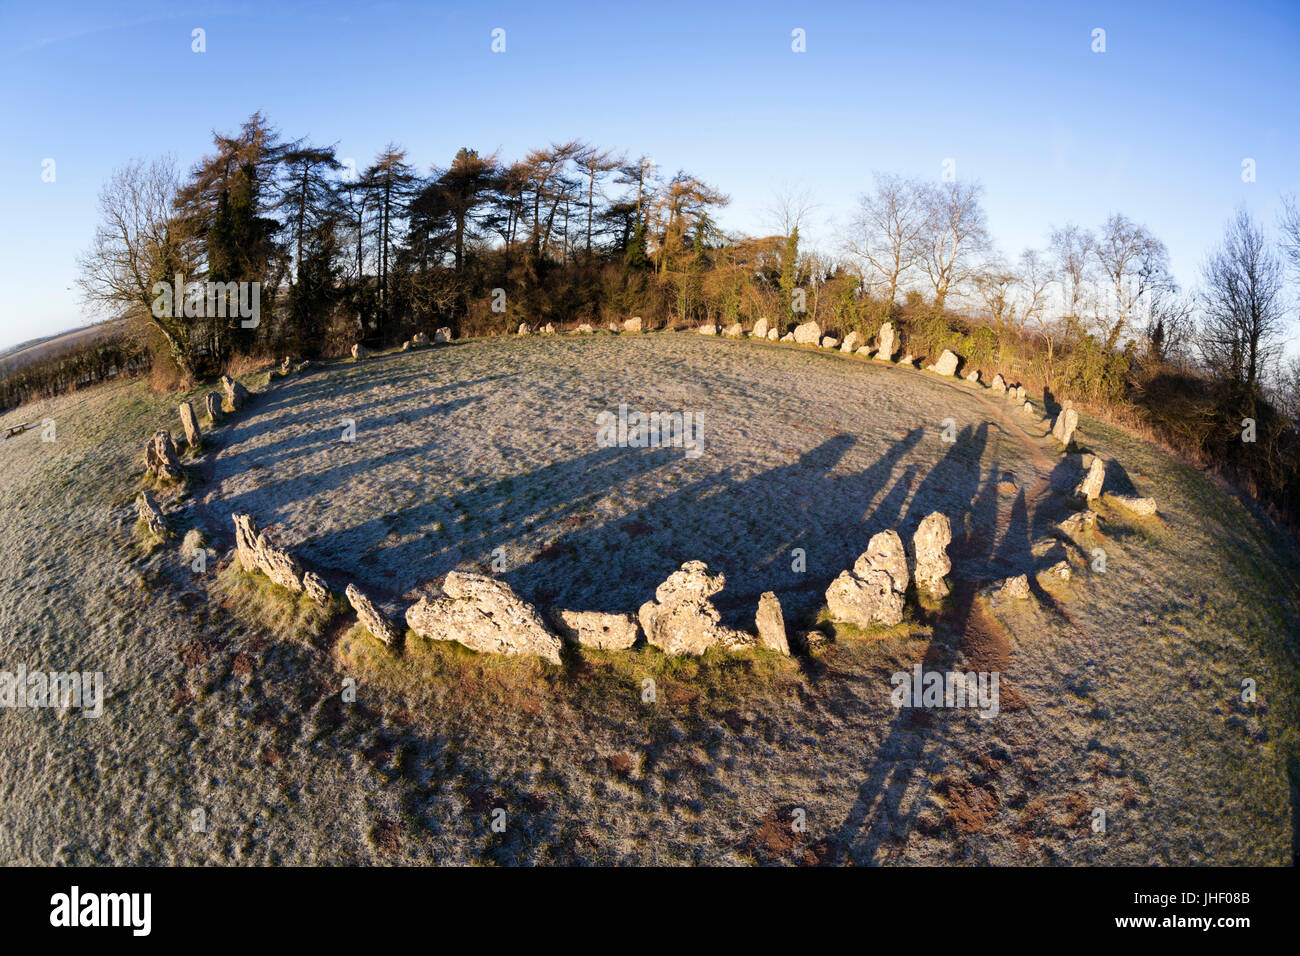 The King's Men stone circle in winter frost, The Rollright Stones, Chipping Norton, Cotswolds, Oxfordshire, - Stock Image